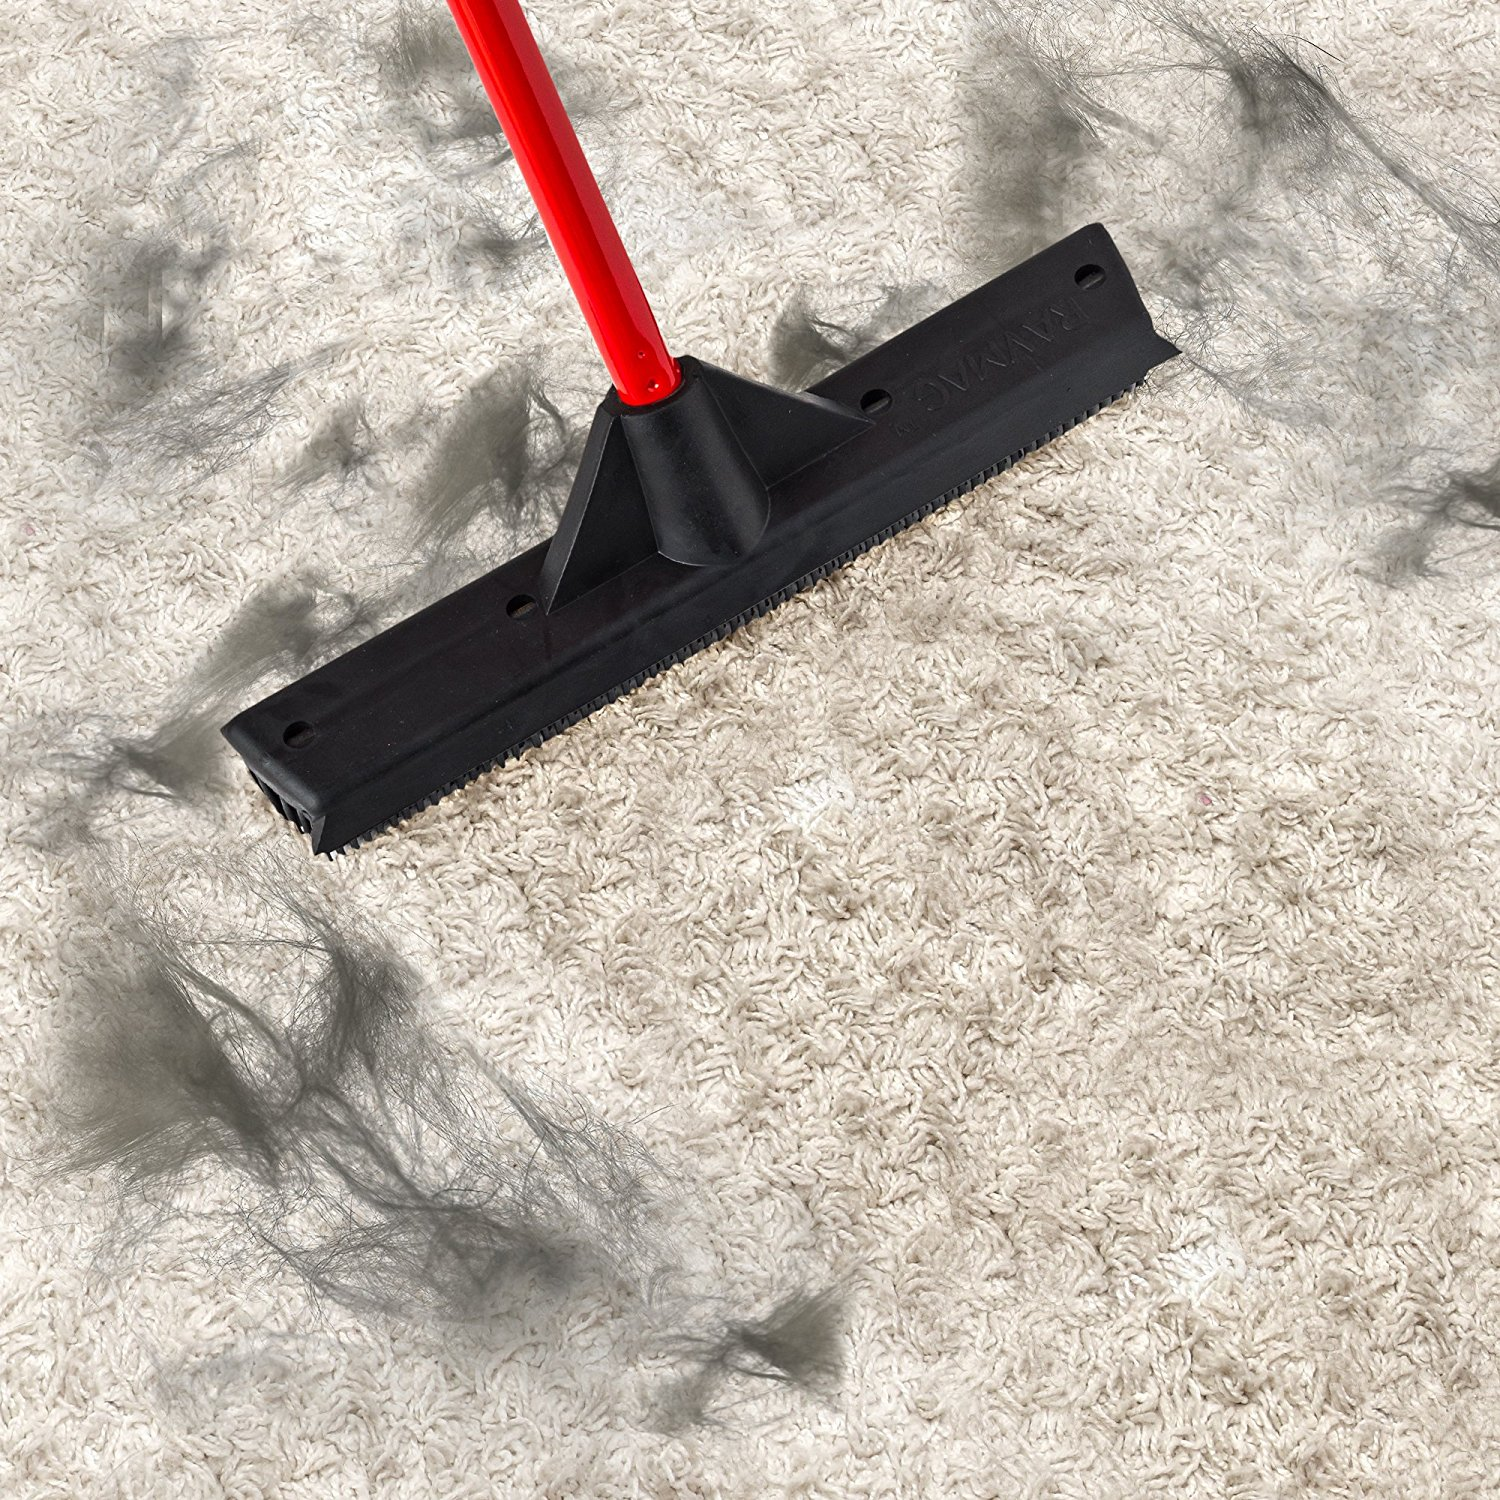 Best Rug Amp Carpet Rakes For Your Home